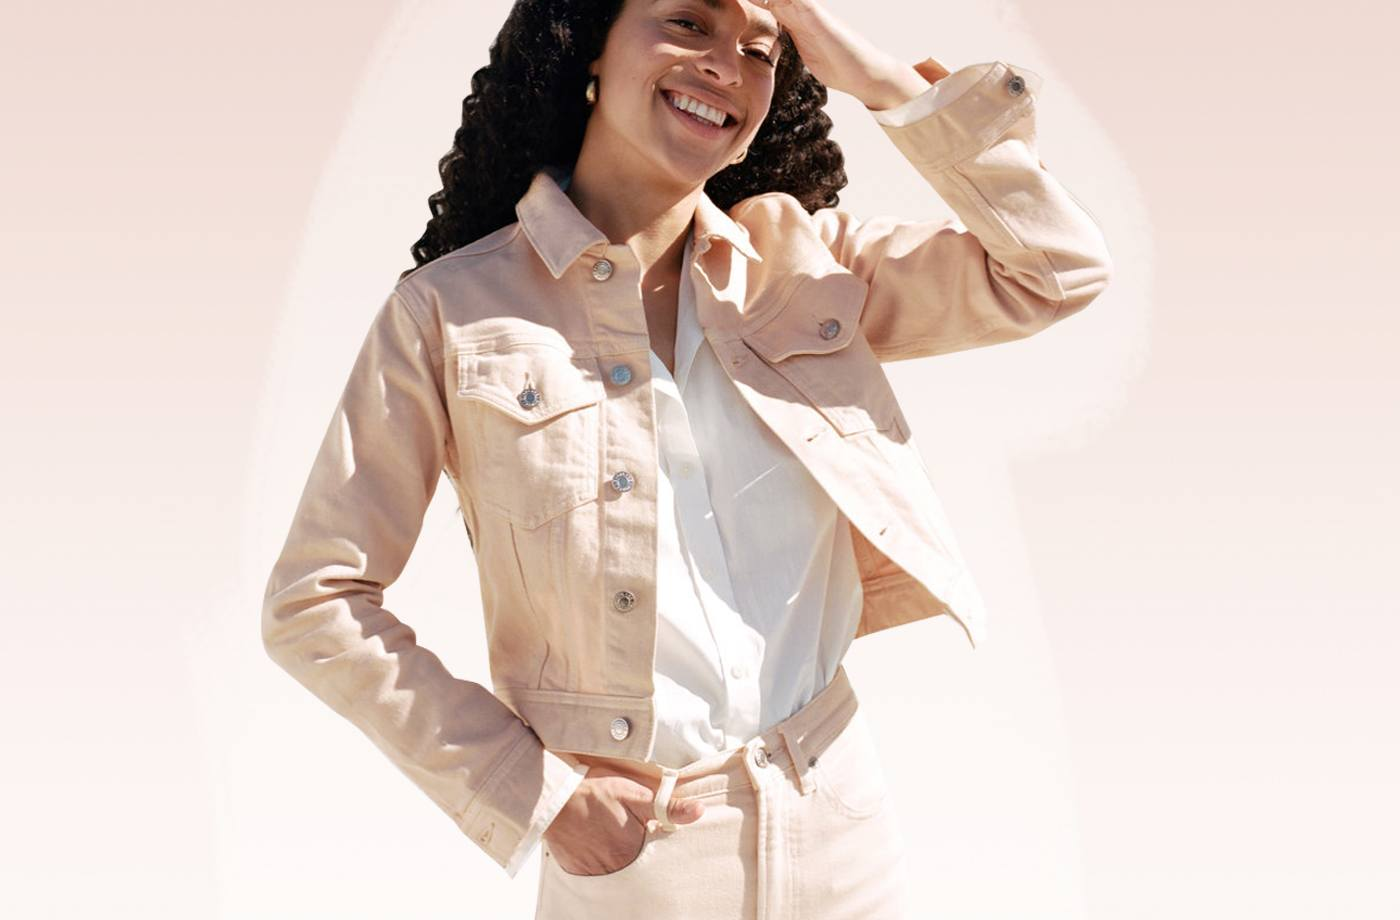 Thumbnail for This (on Sale!) Everlane Jacket Will Make You Feel Like a Modern Pink Lady